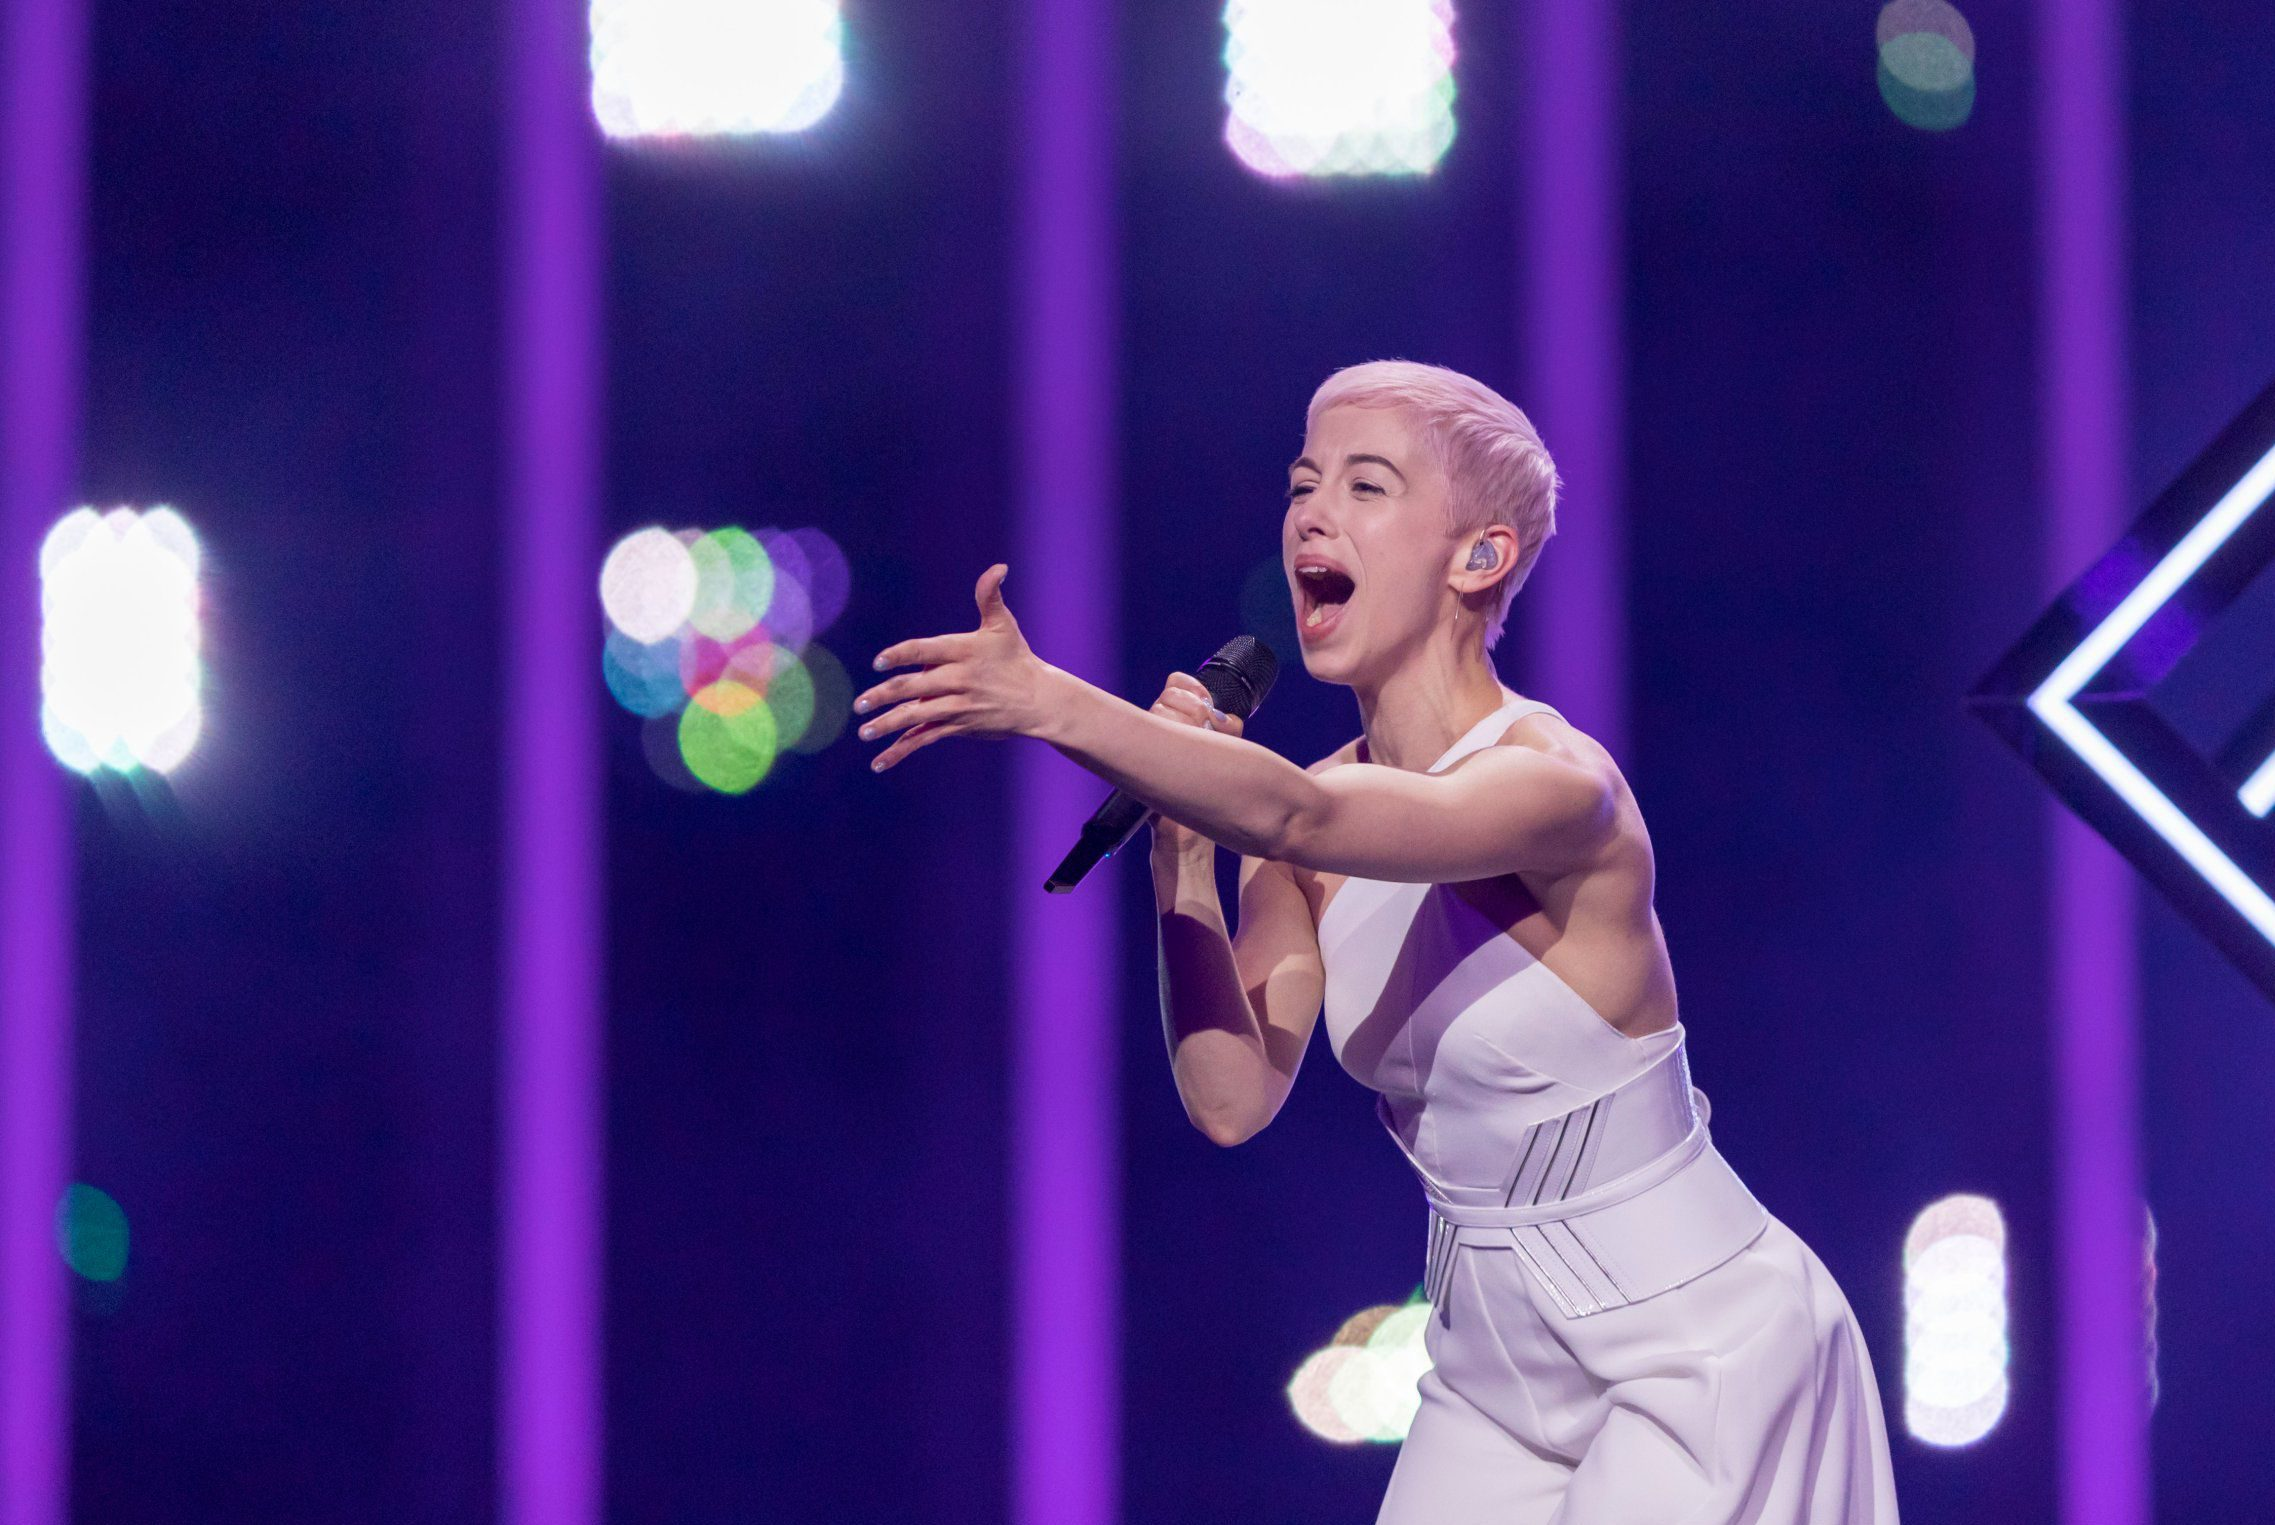 SuRie still has sense of humour as she breaks silence following Eurovision stage crasher ruins performance